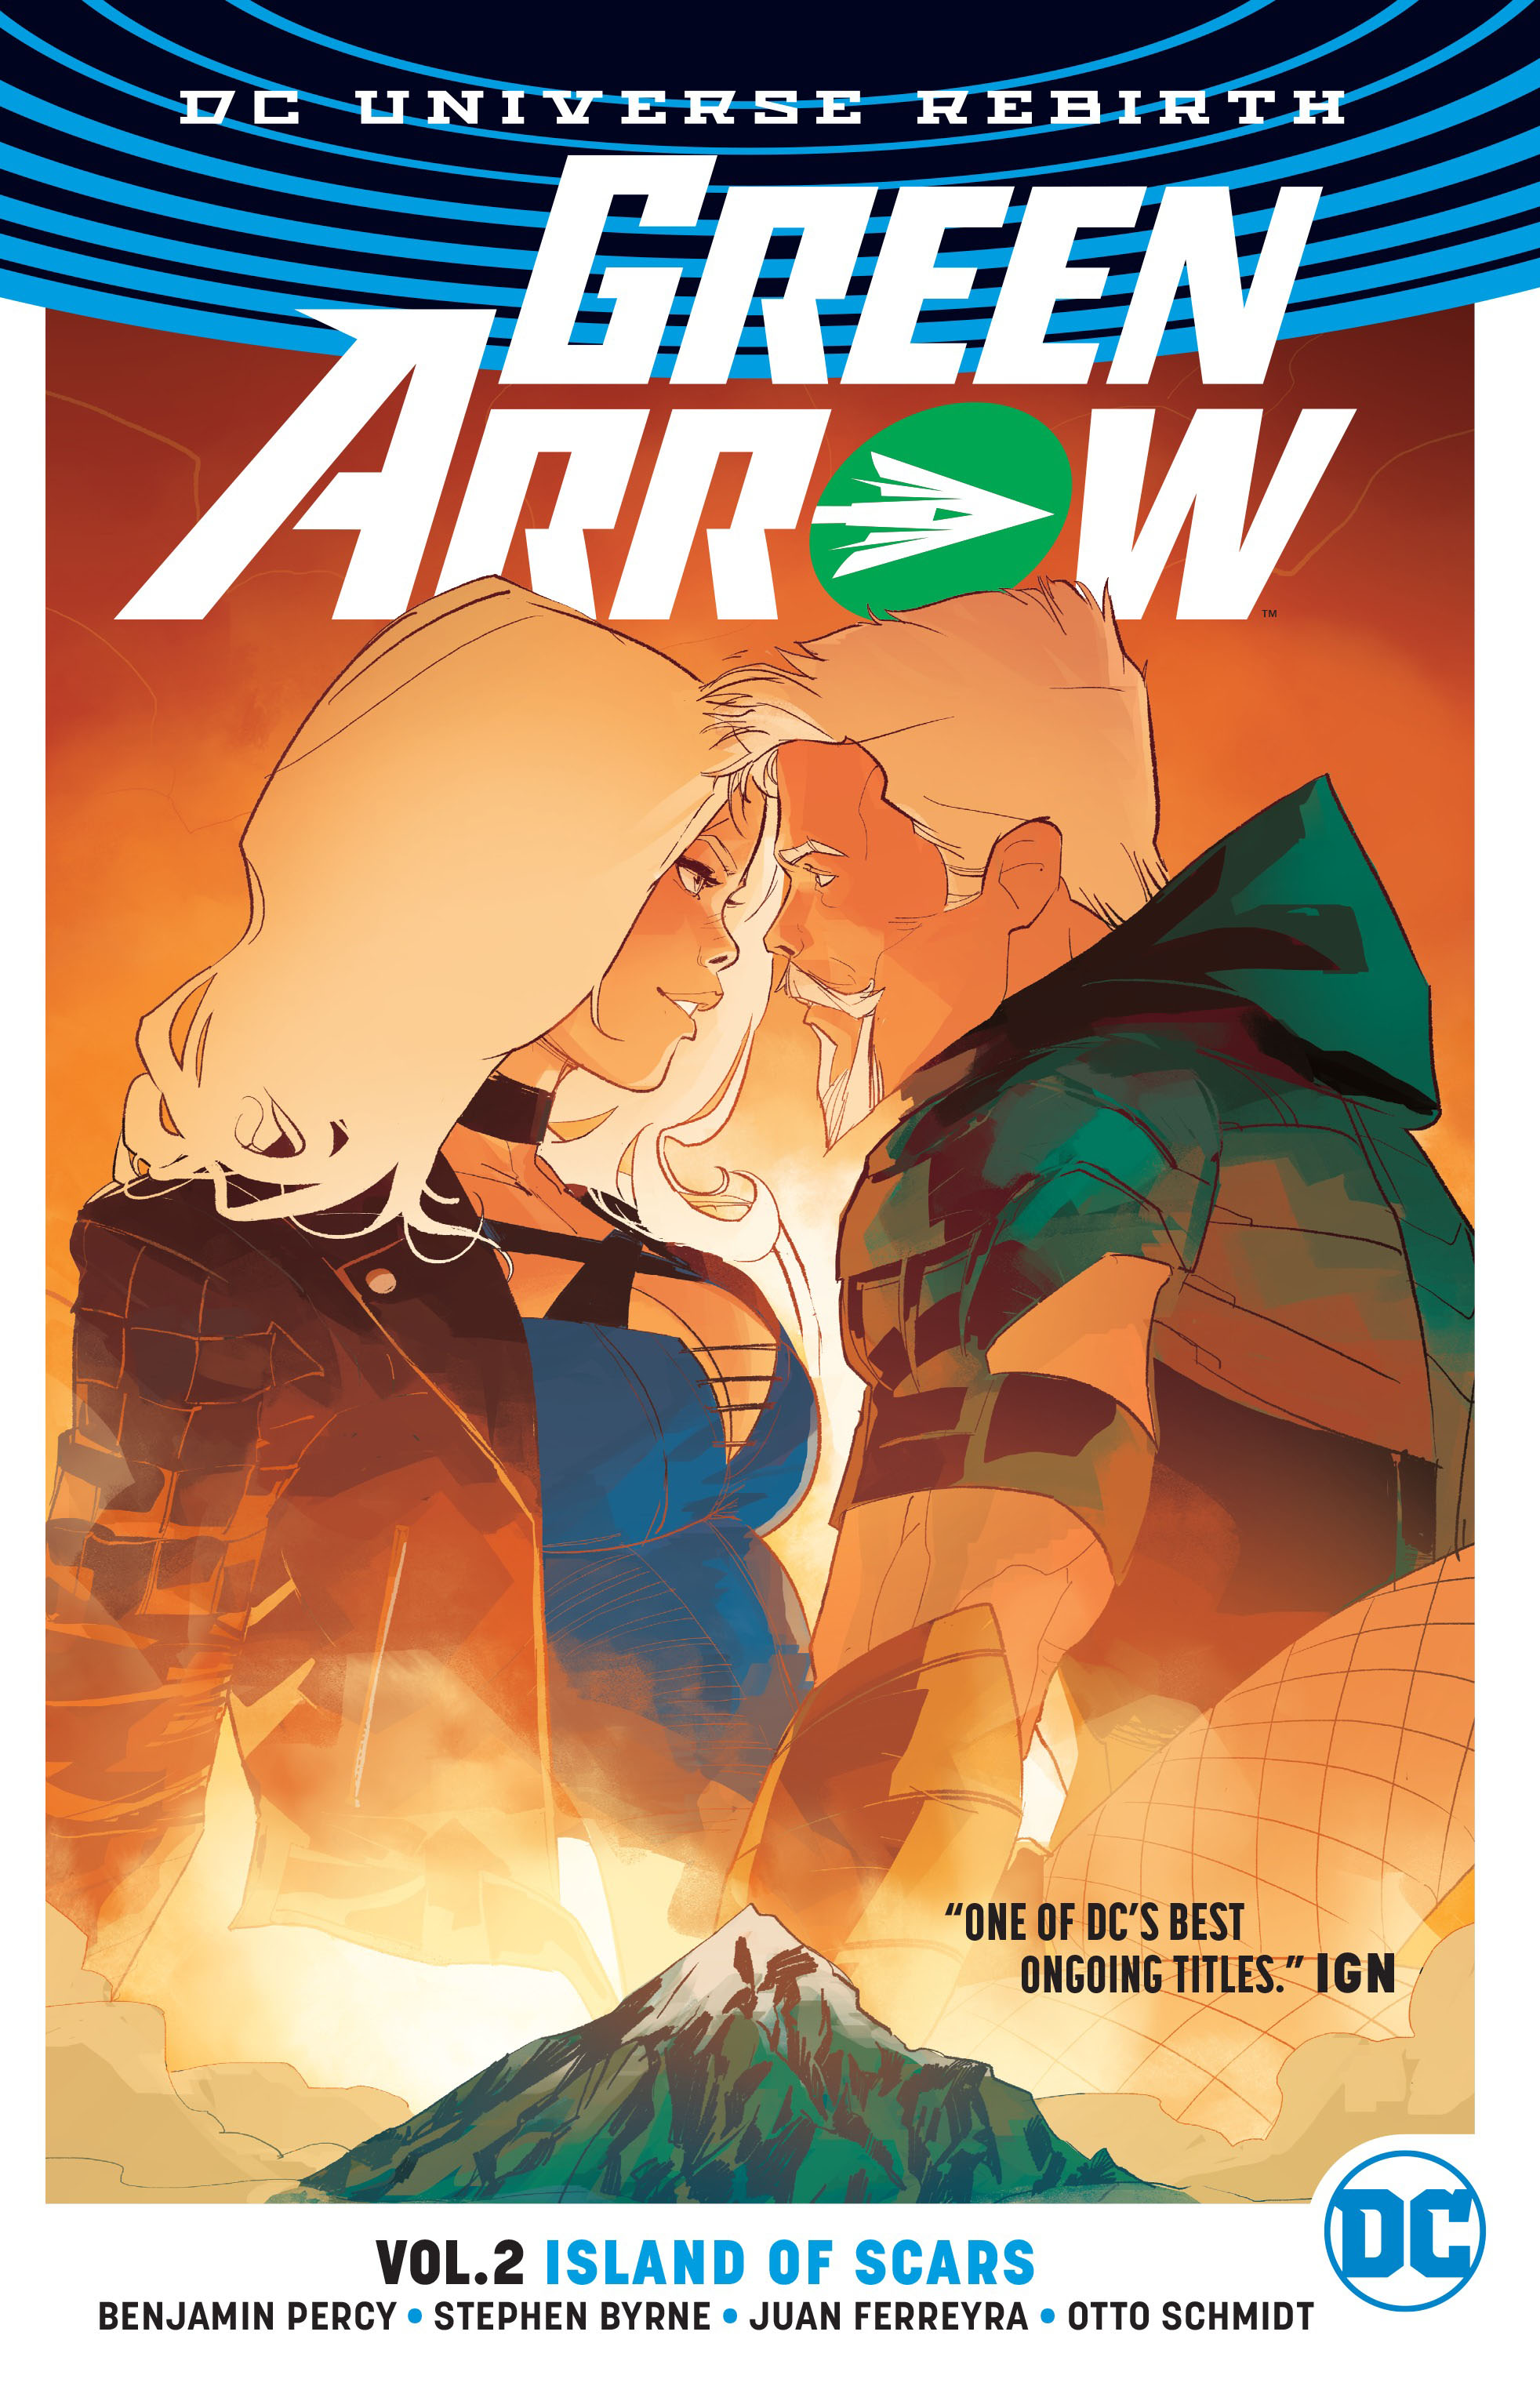 Green Arrow Vol. 2: Island of Scars (Rebirth) human trafficking a challenge in ethiopia